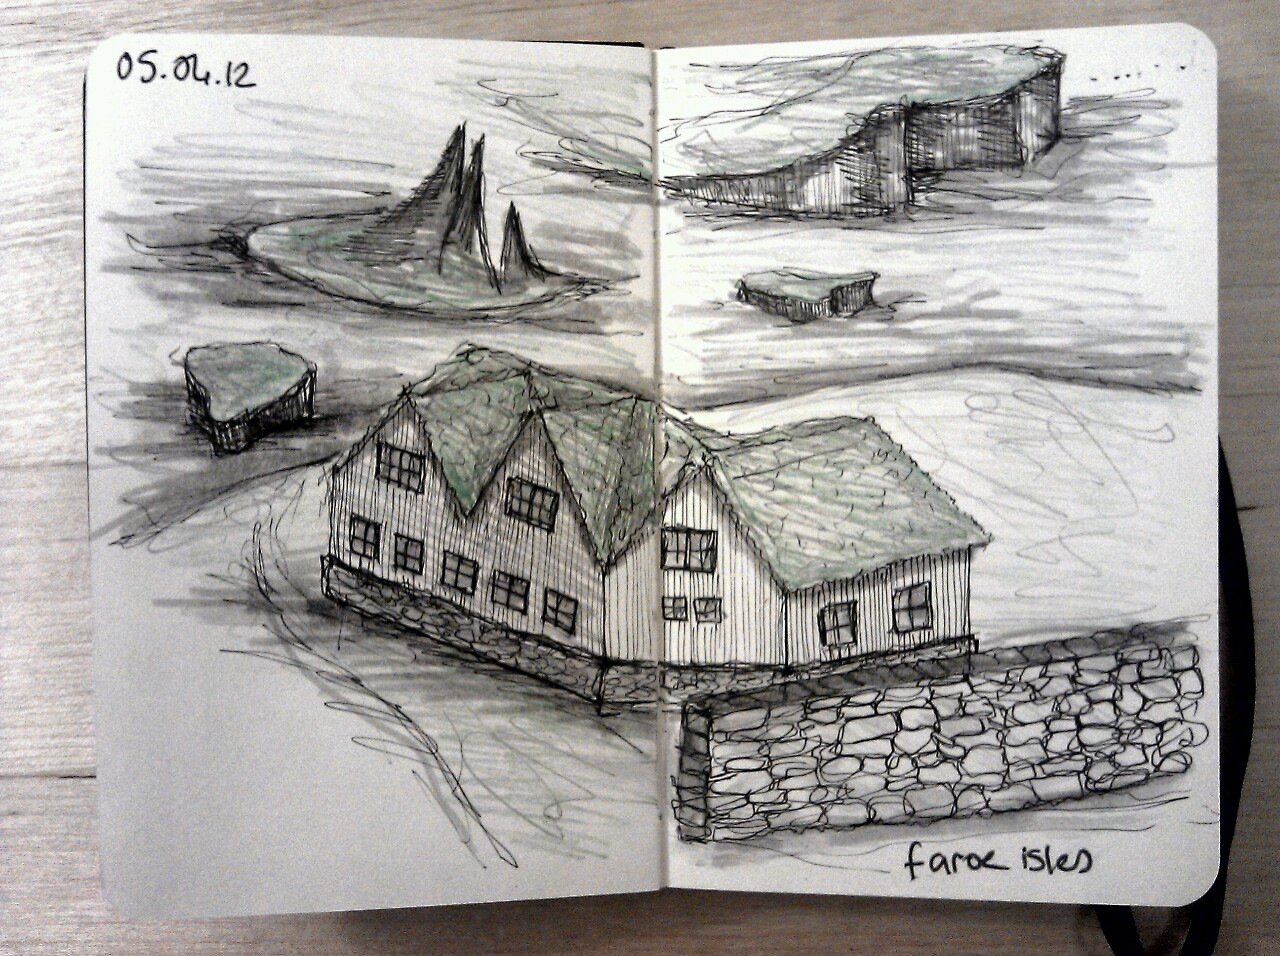 365 drawings later … day 65 … faroe isles (would make for a nice long weekend, who wants to come with me?)